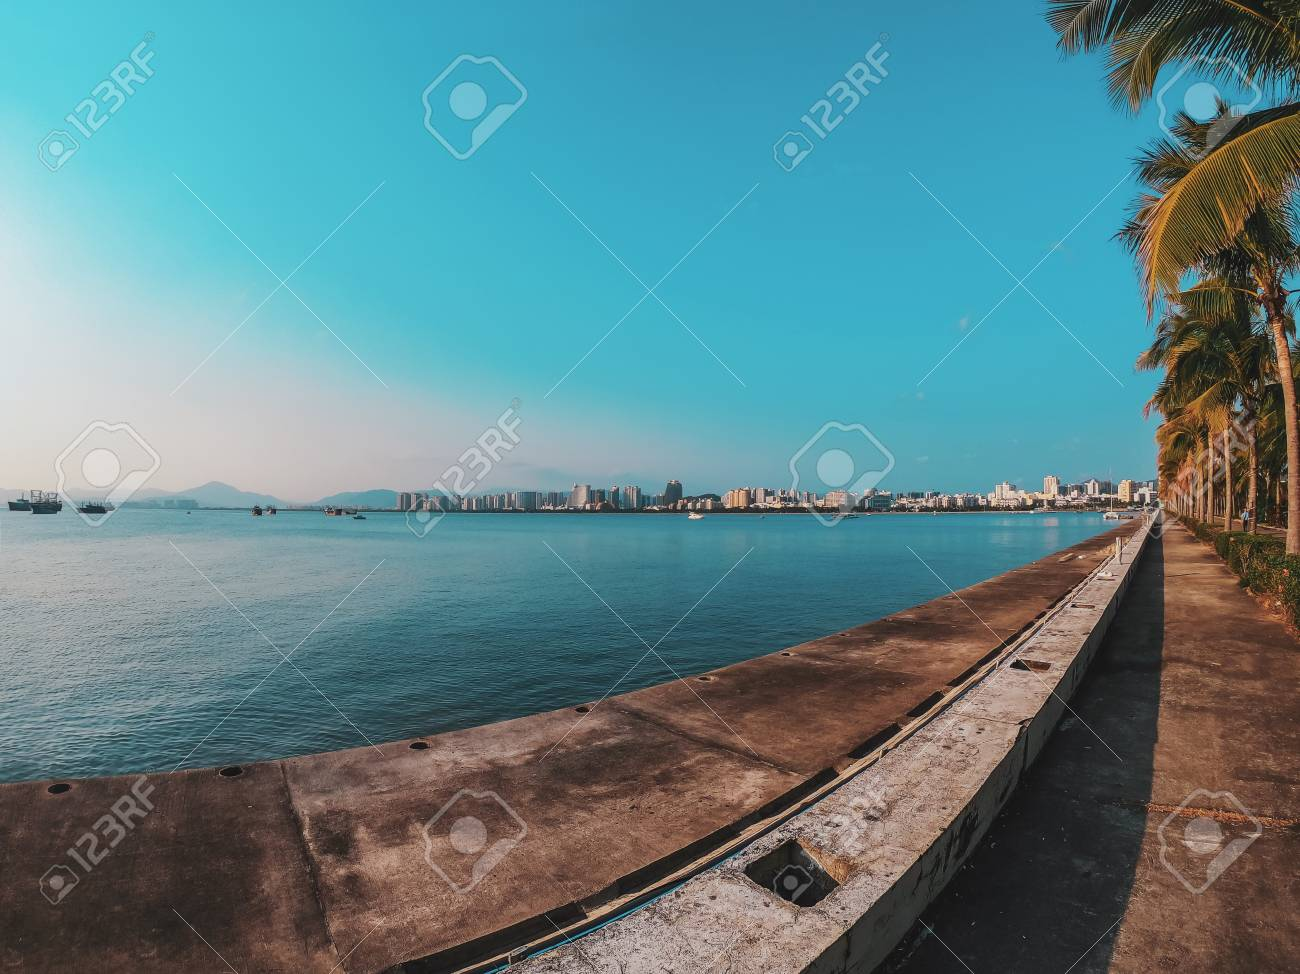 Nice asfalt road with palm trees against the blue sky and cloud. Palm trees grow along the road by the sea in China. Colorful image for the screen saver on the desktop. - 126731532